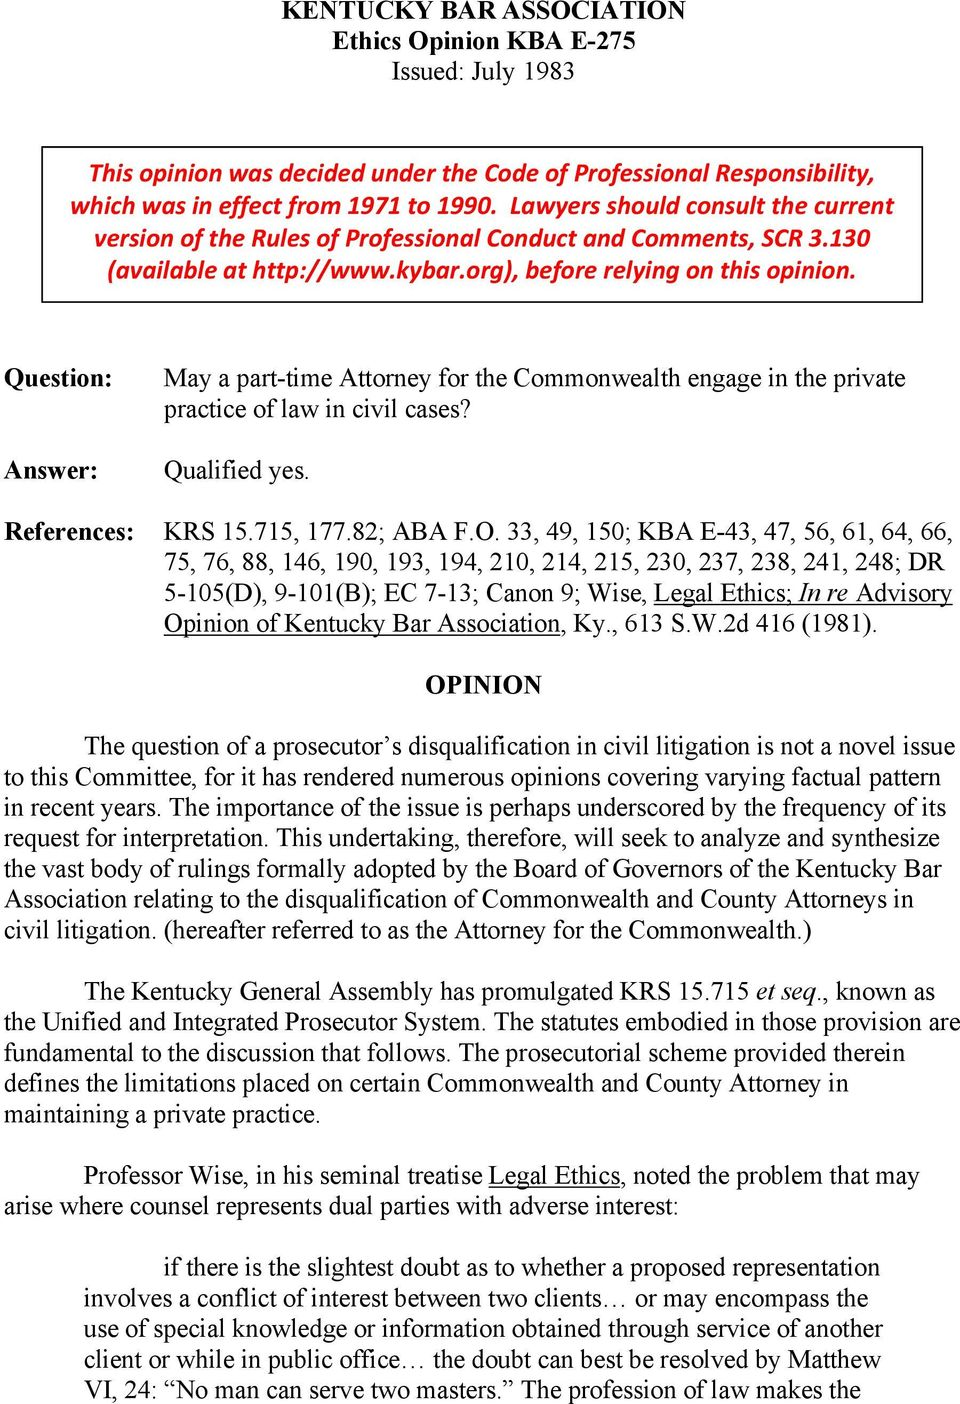 Question: Answer: May a part-time Attorney for the Commonwealth engage in the private practice of law in civil cases? Qualified yes. References: KRS 15.715, 177.82; ABA F.O.